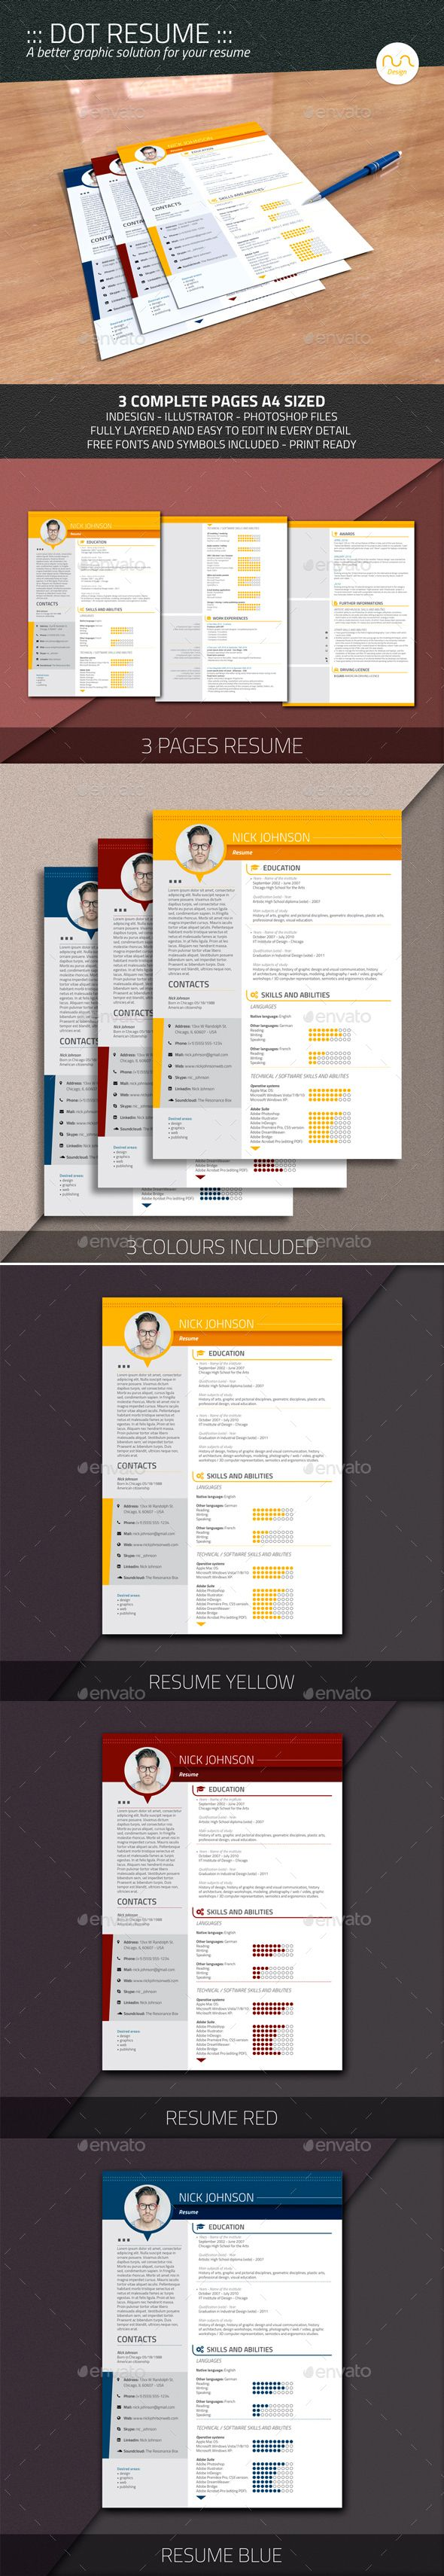 dot resume template psd  indesign indd  ai illustrator